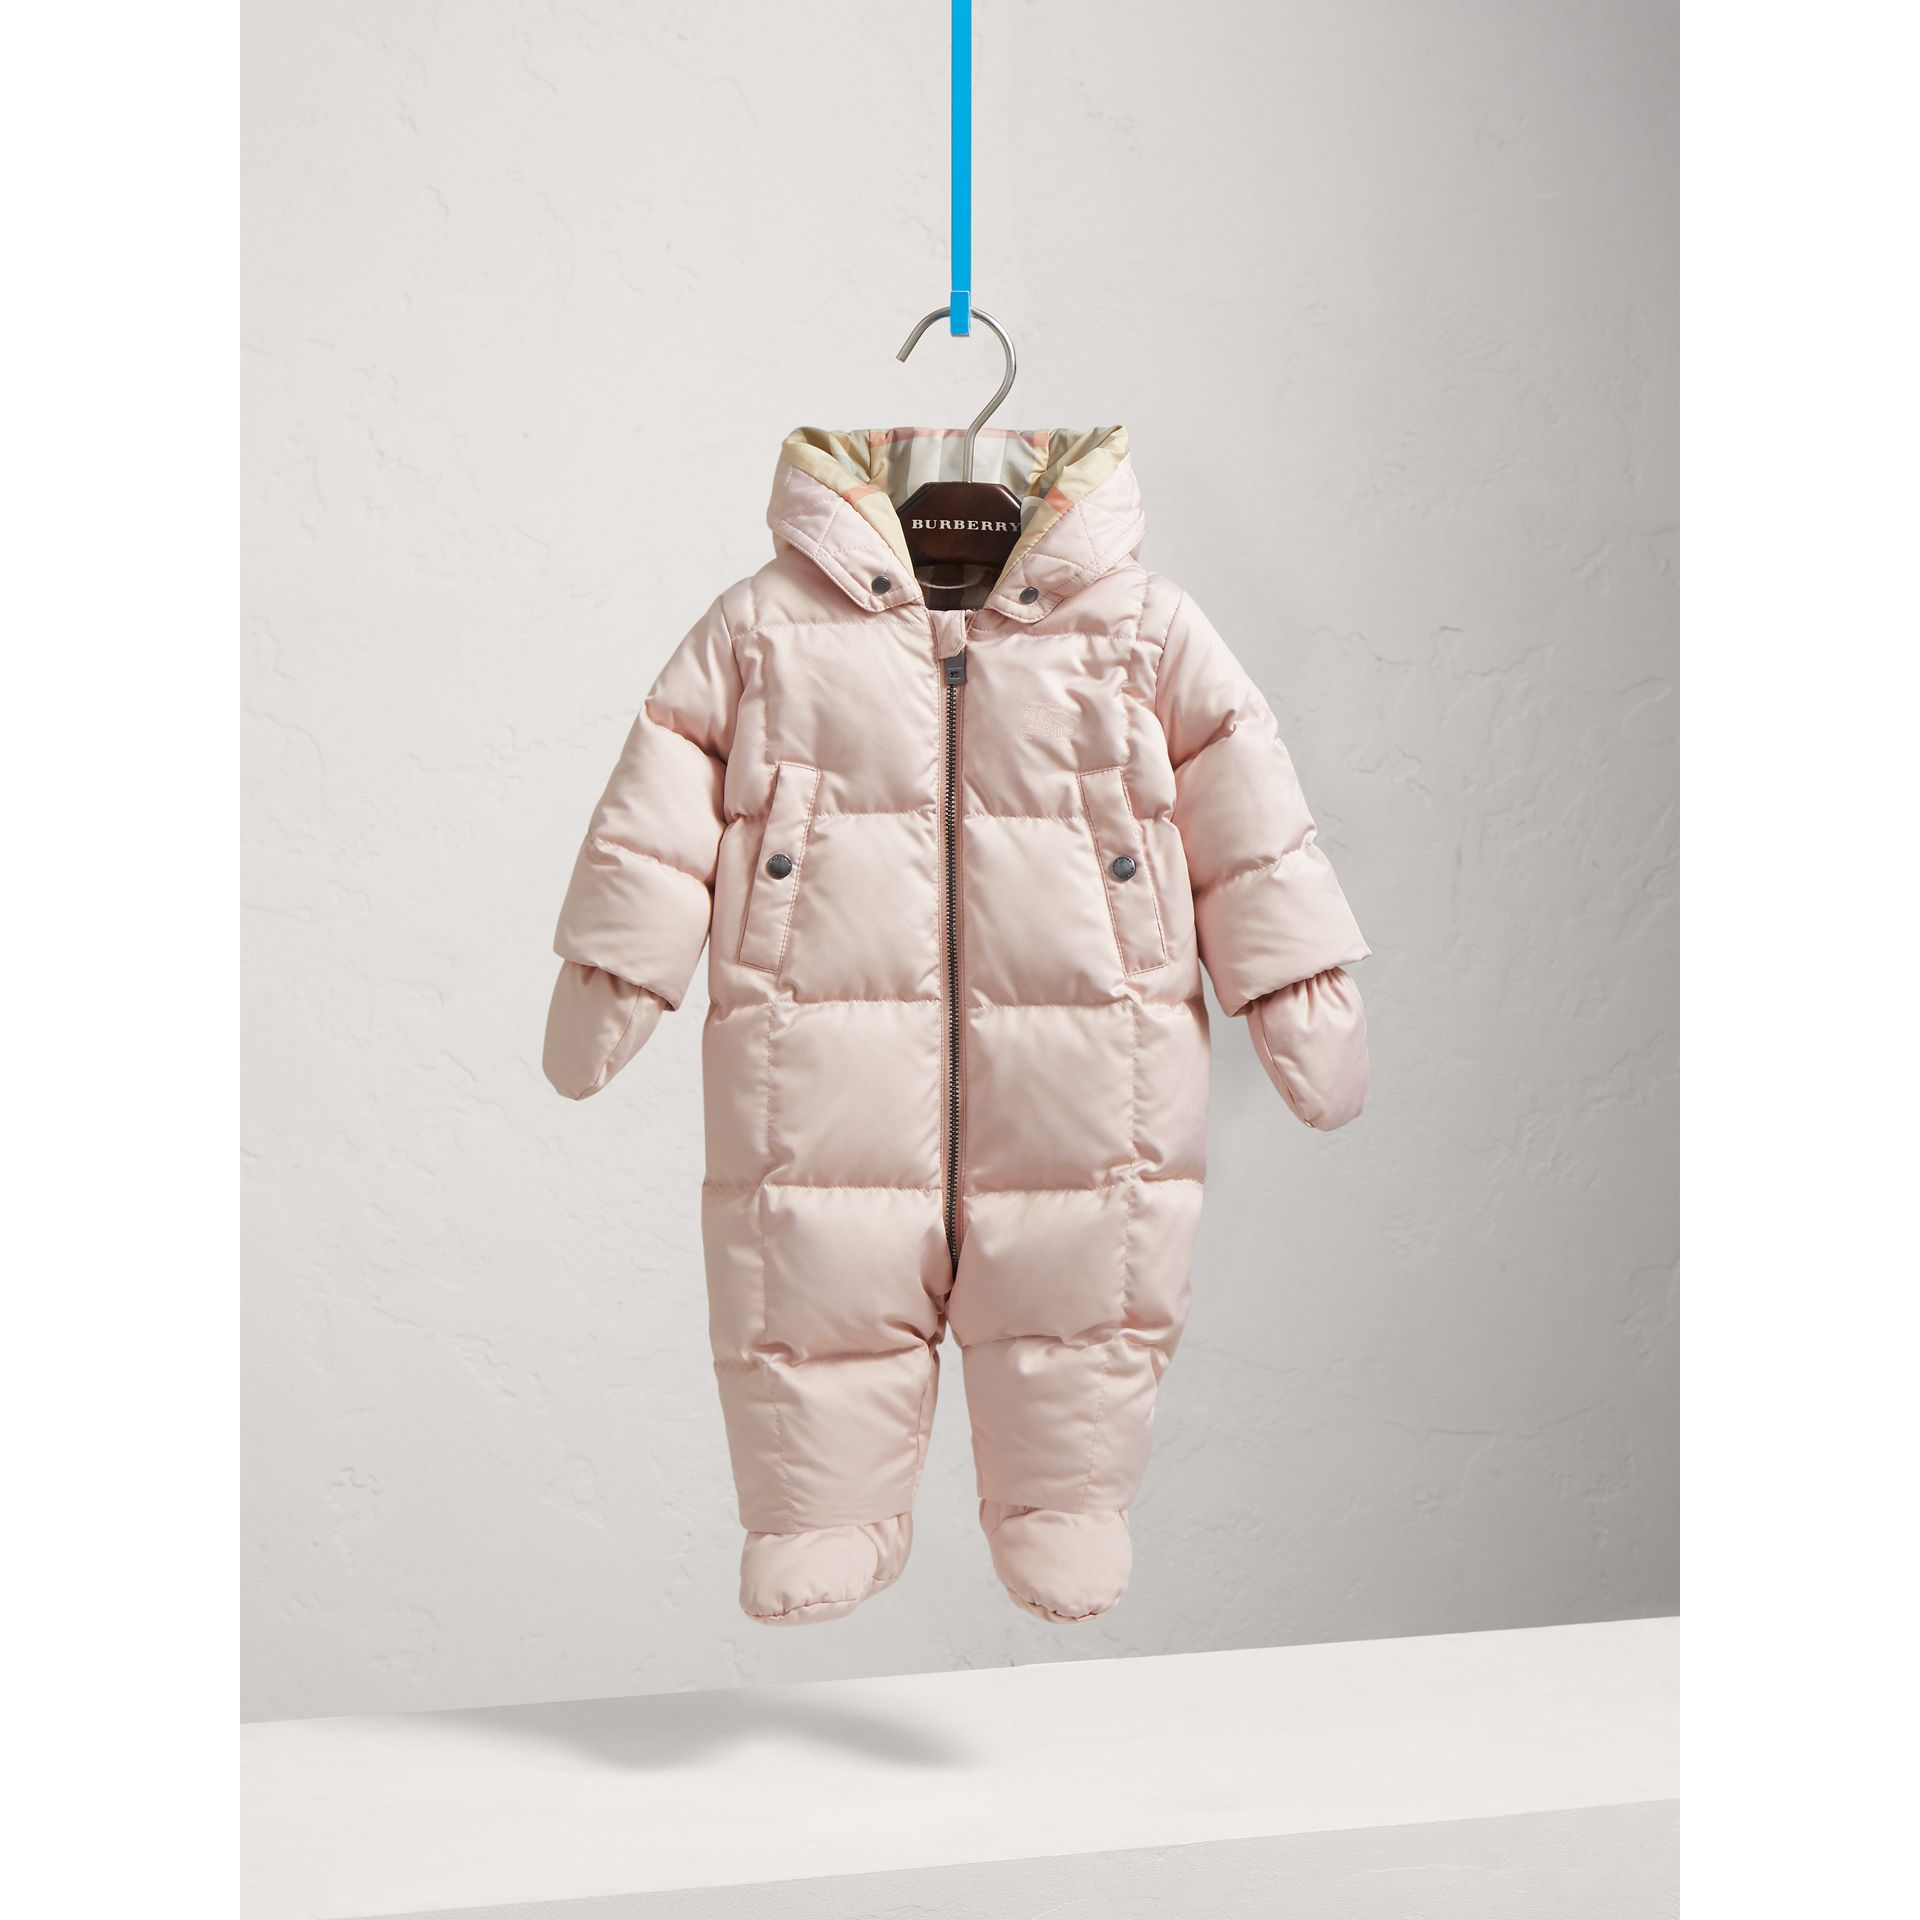 Down-filled Puffer Suit in Powder Pink | Burberry - gallery image 2